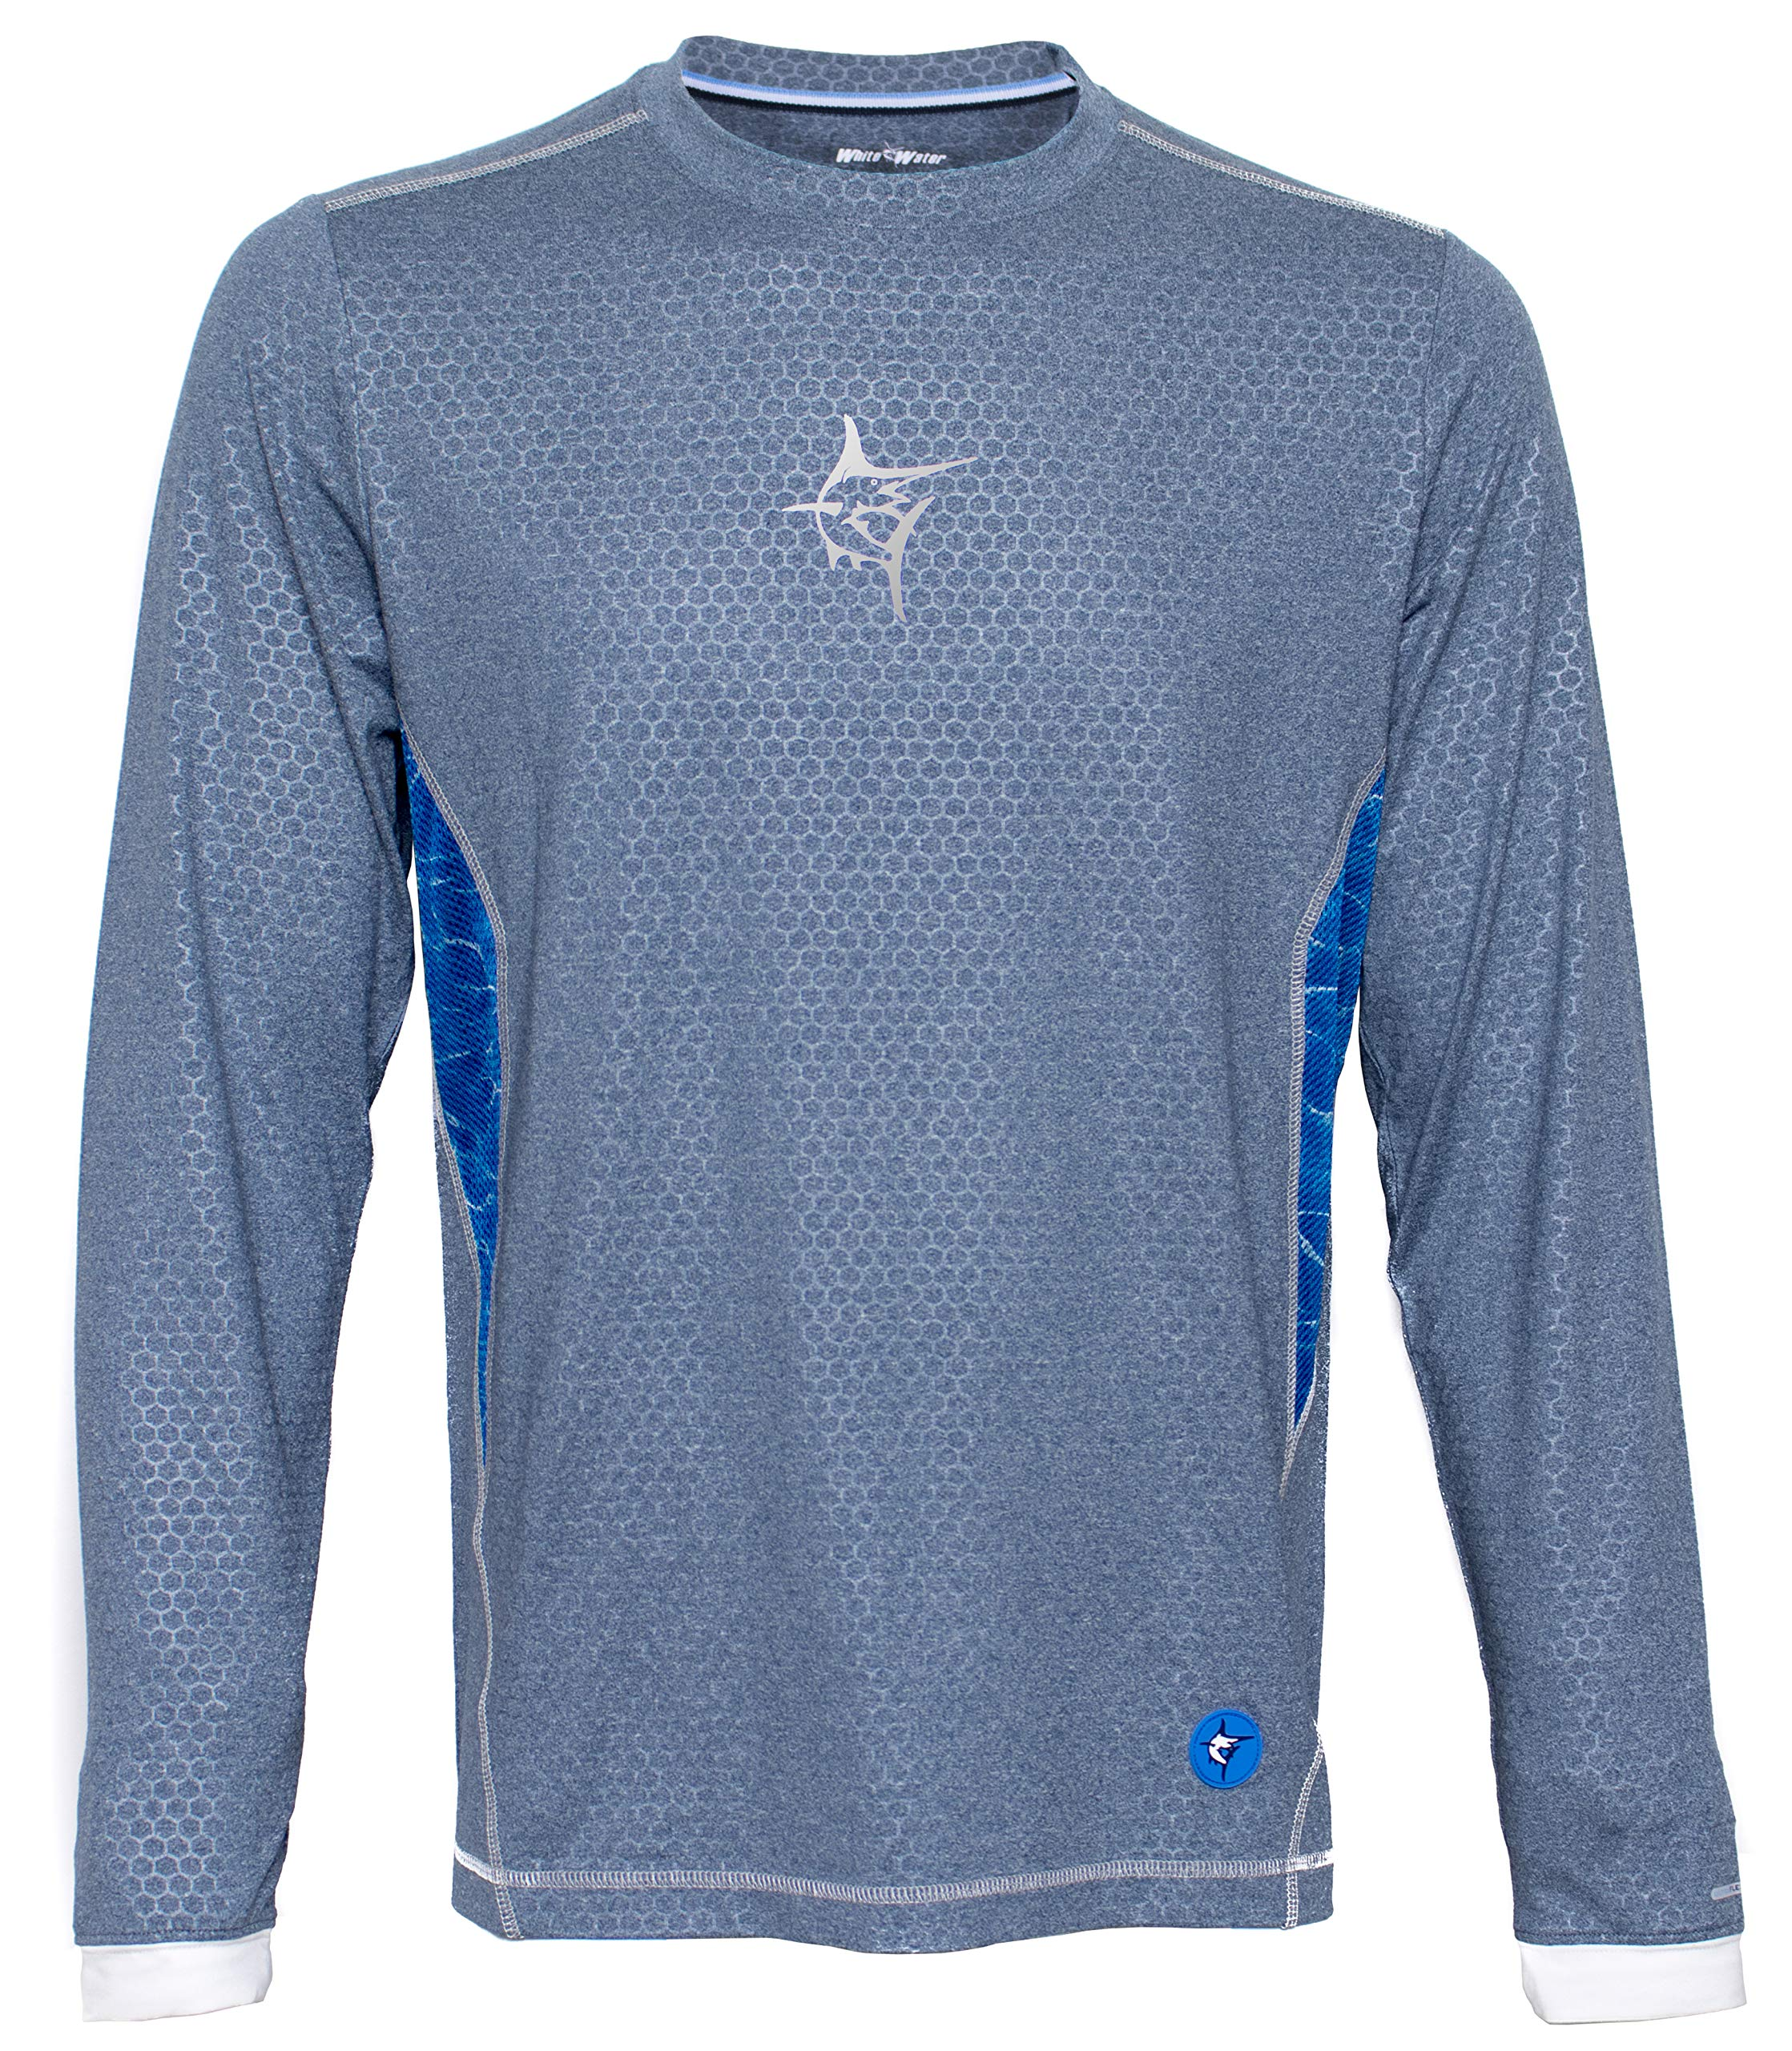 White Water Men's Technoflex Long Sleeve Performance Shirt with UV50 Protection-Blue/Grey XL by White Water